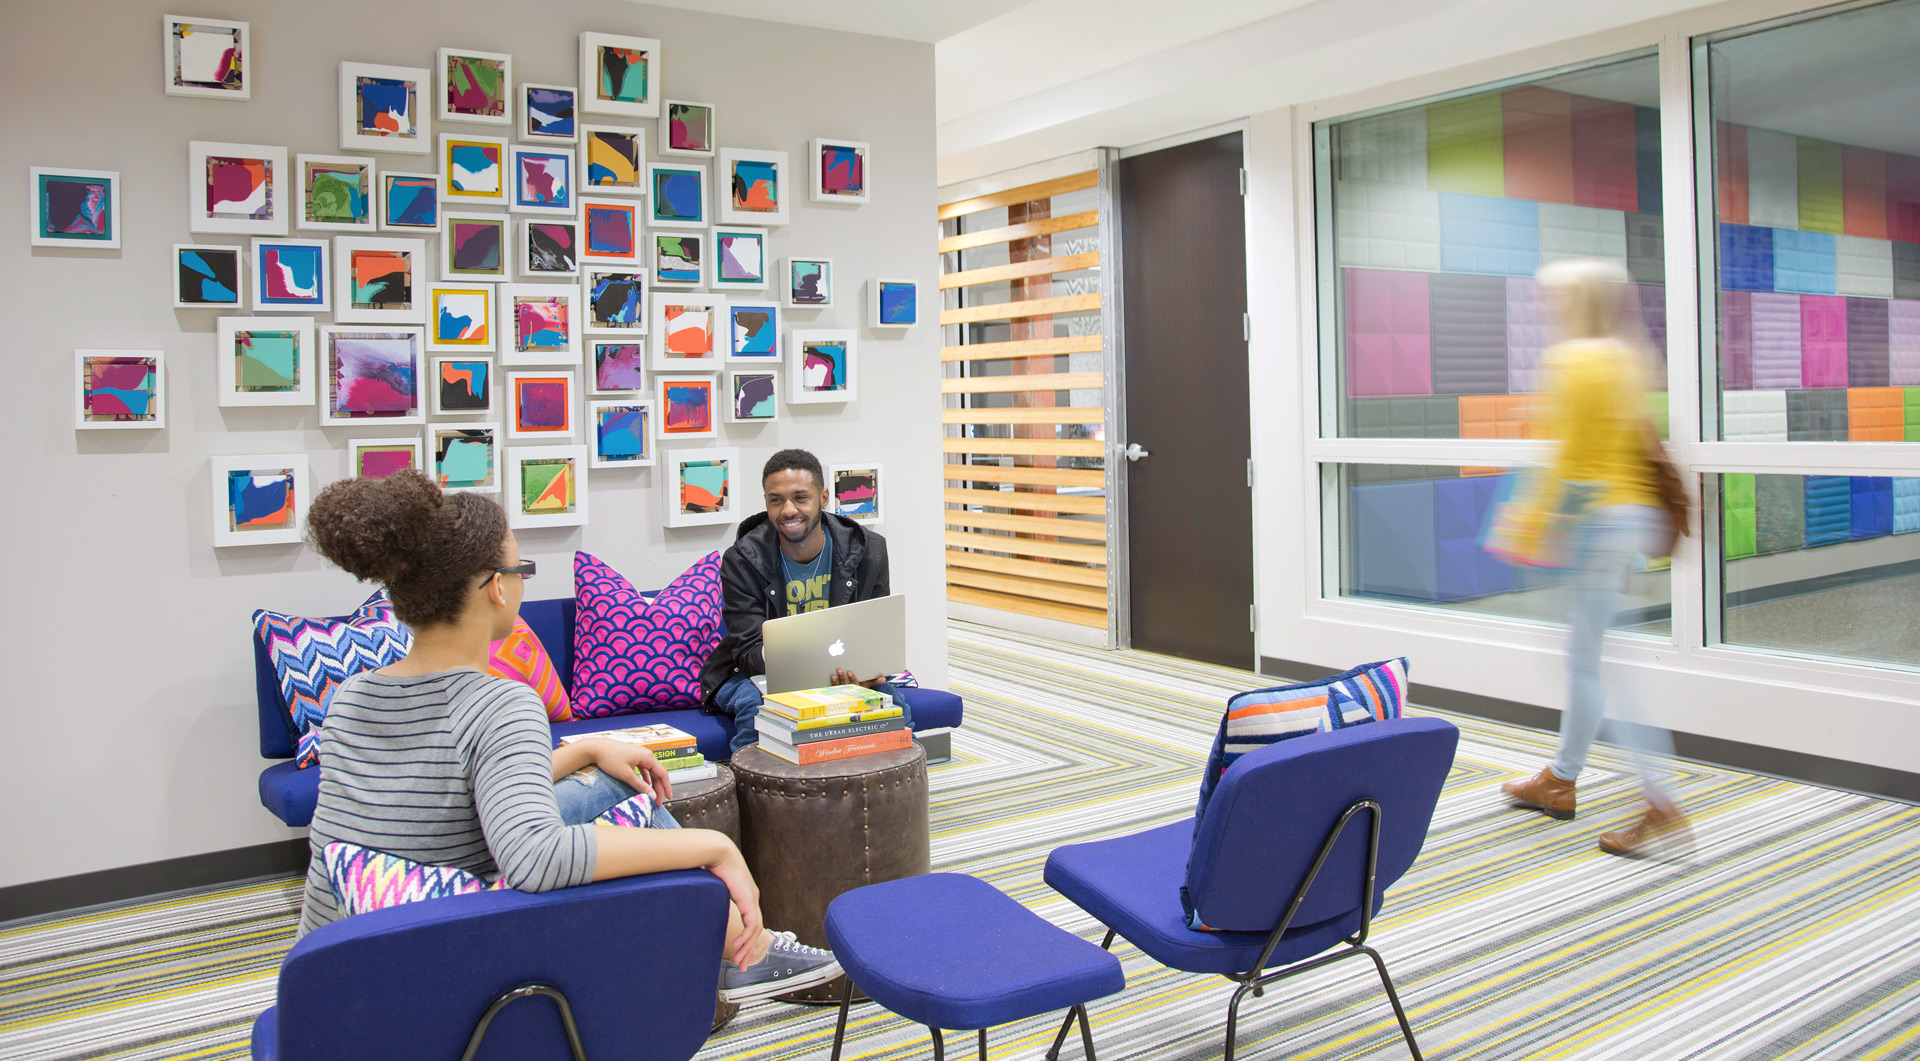 scad writing center The aha hopes to spur a paradigm change in the care of patients with scad, which they say continues to be misdiagnosed, underdiagnosed, and mismanaged.